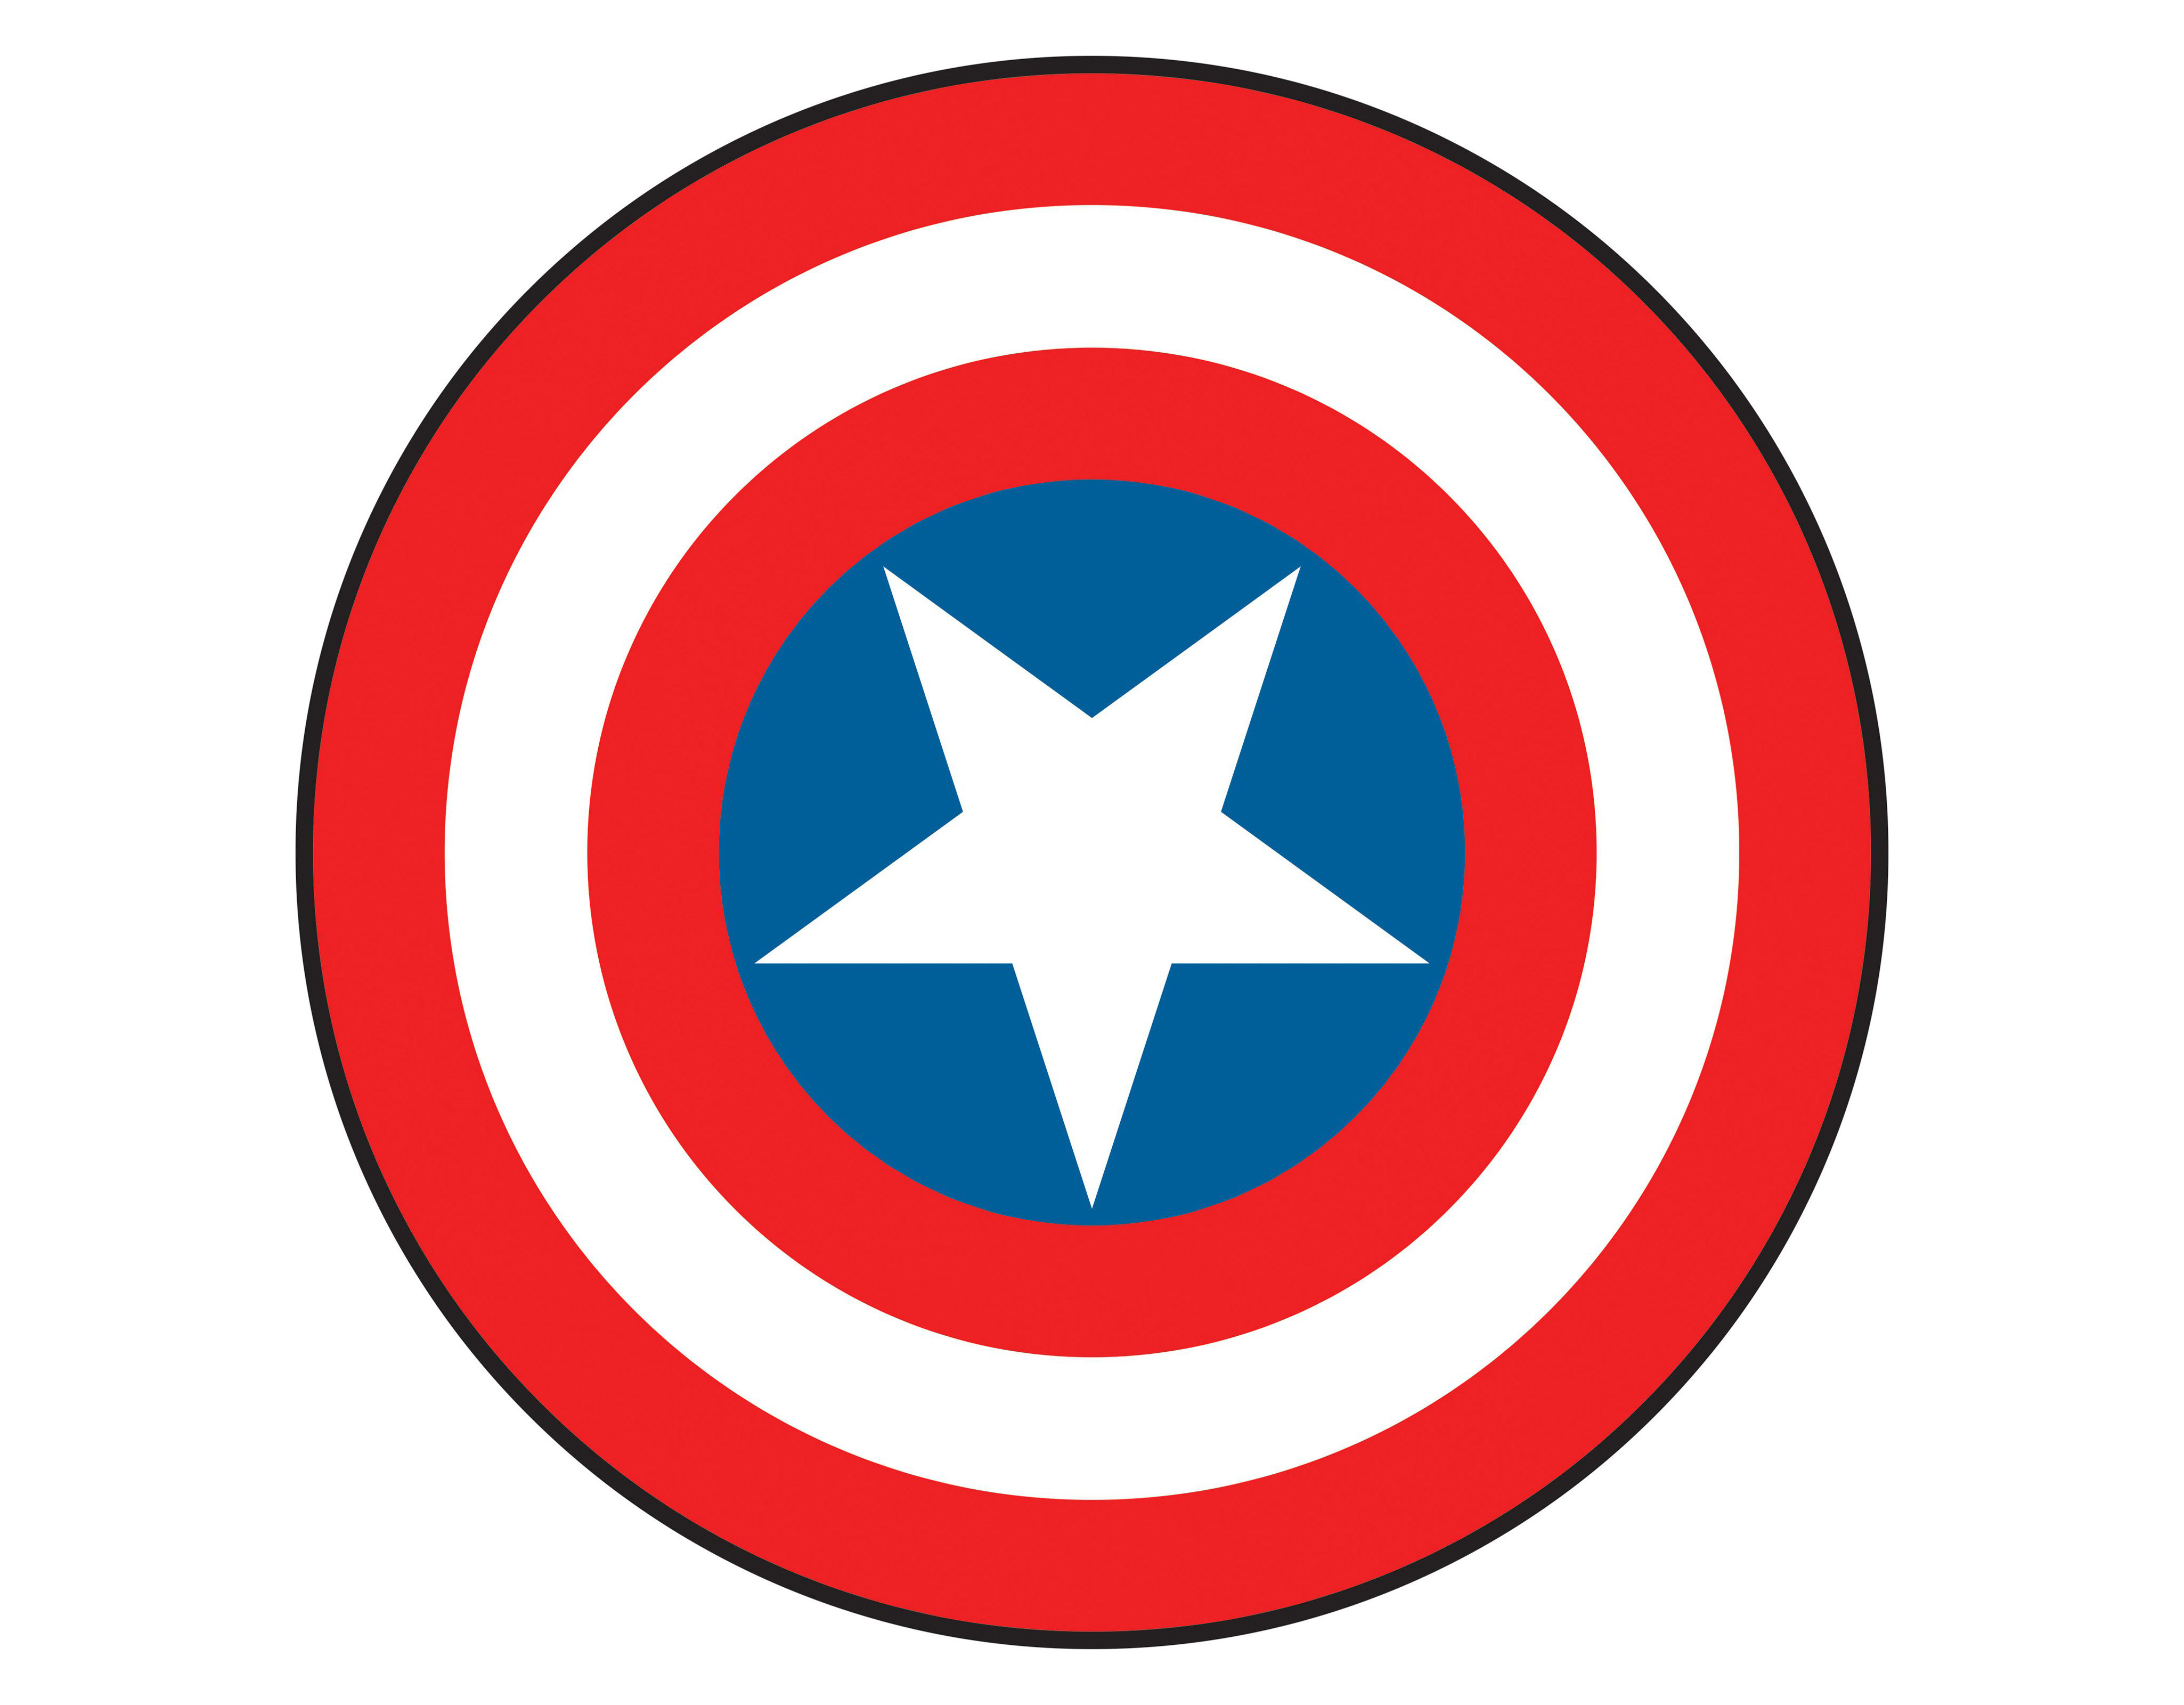 Which Superhero Logo Design Packs The Most Punch